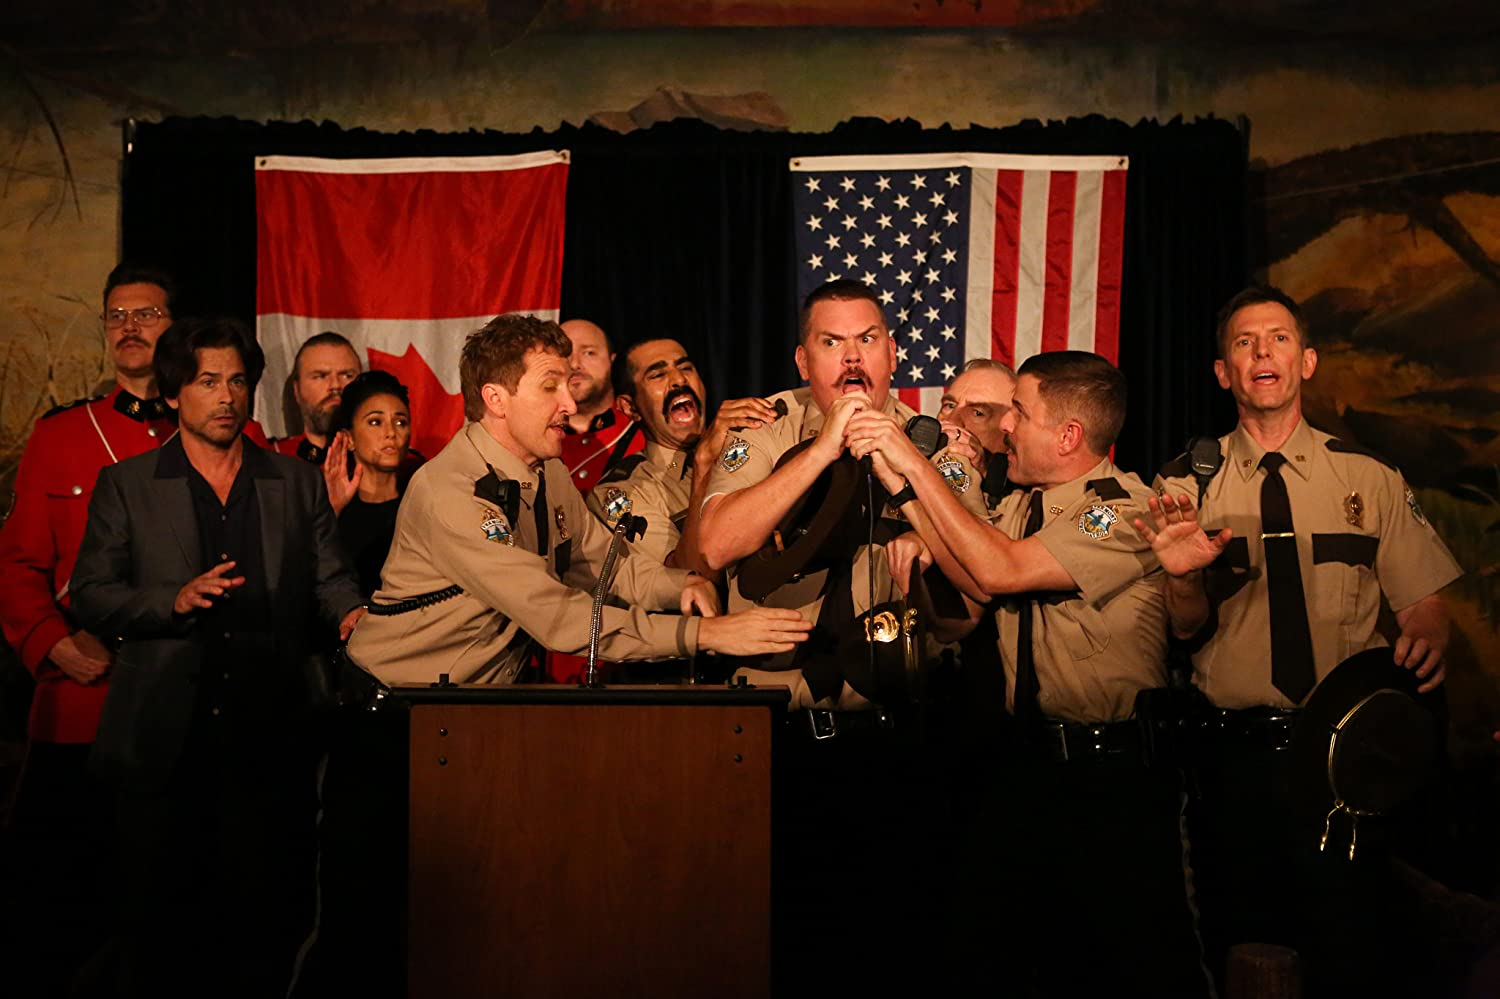 super troopers 2 2018 review jasons movie blog